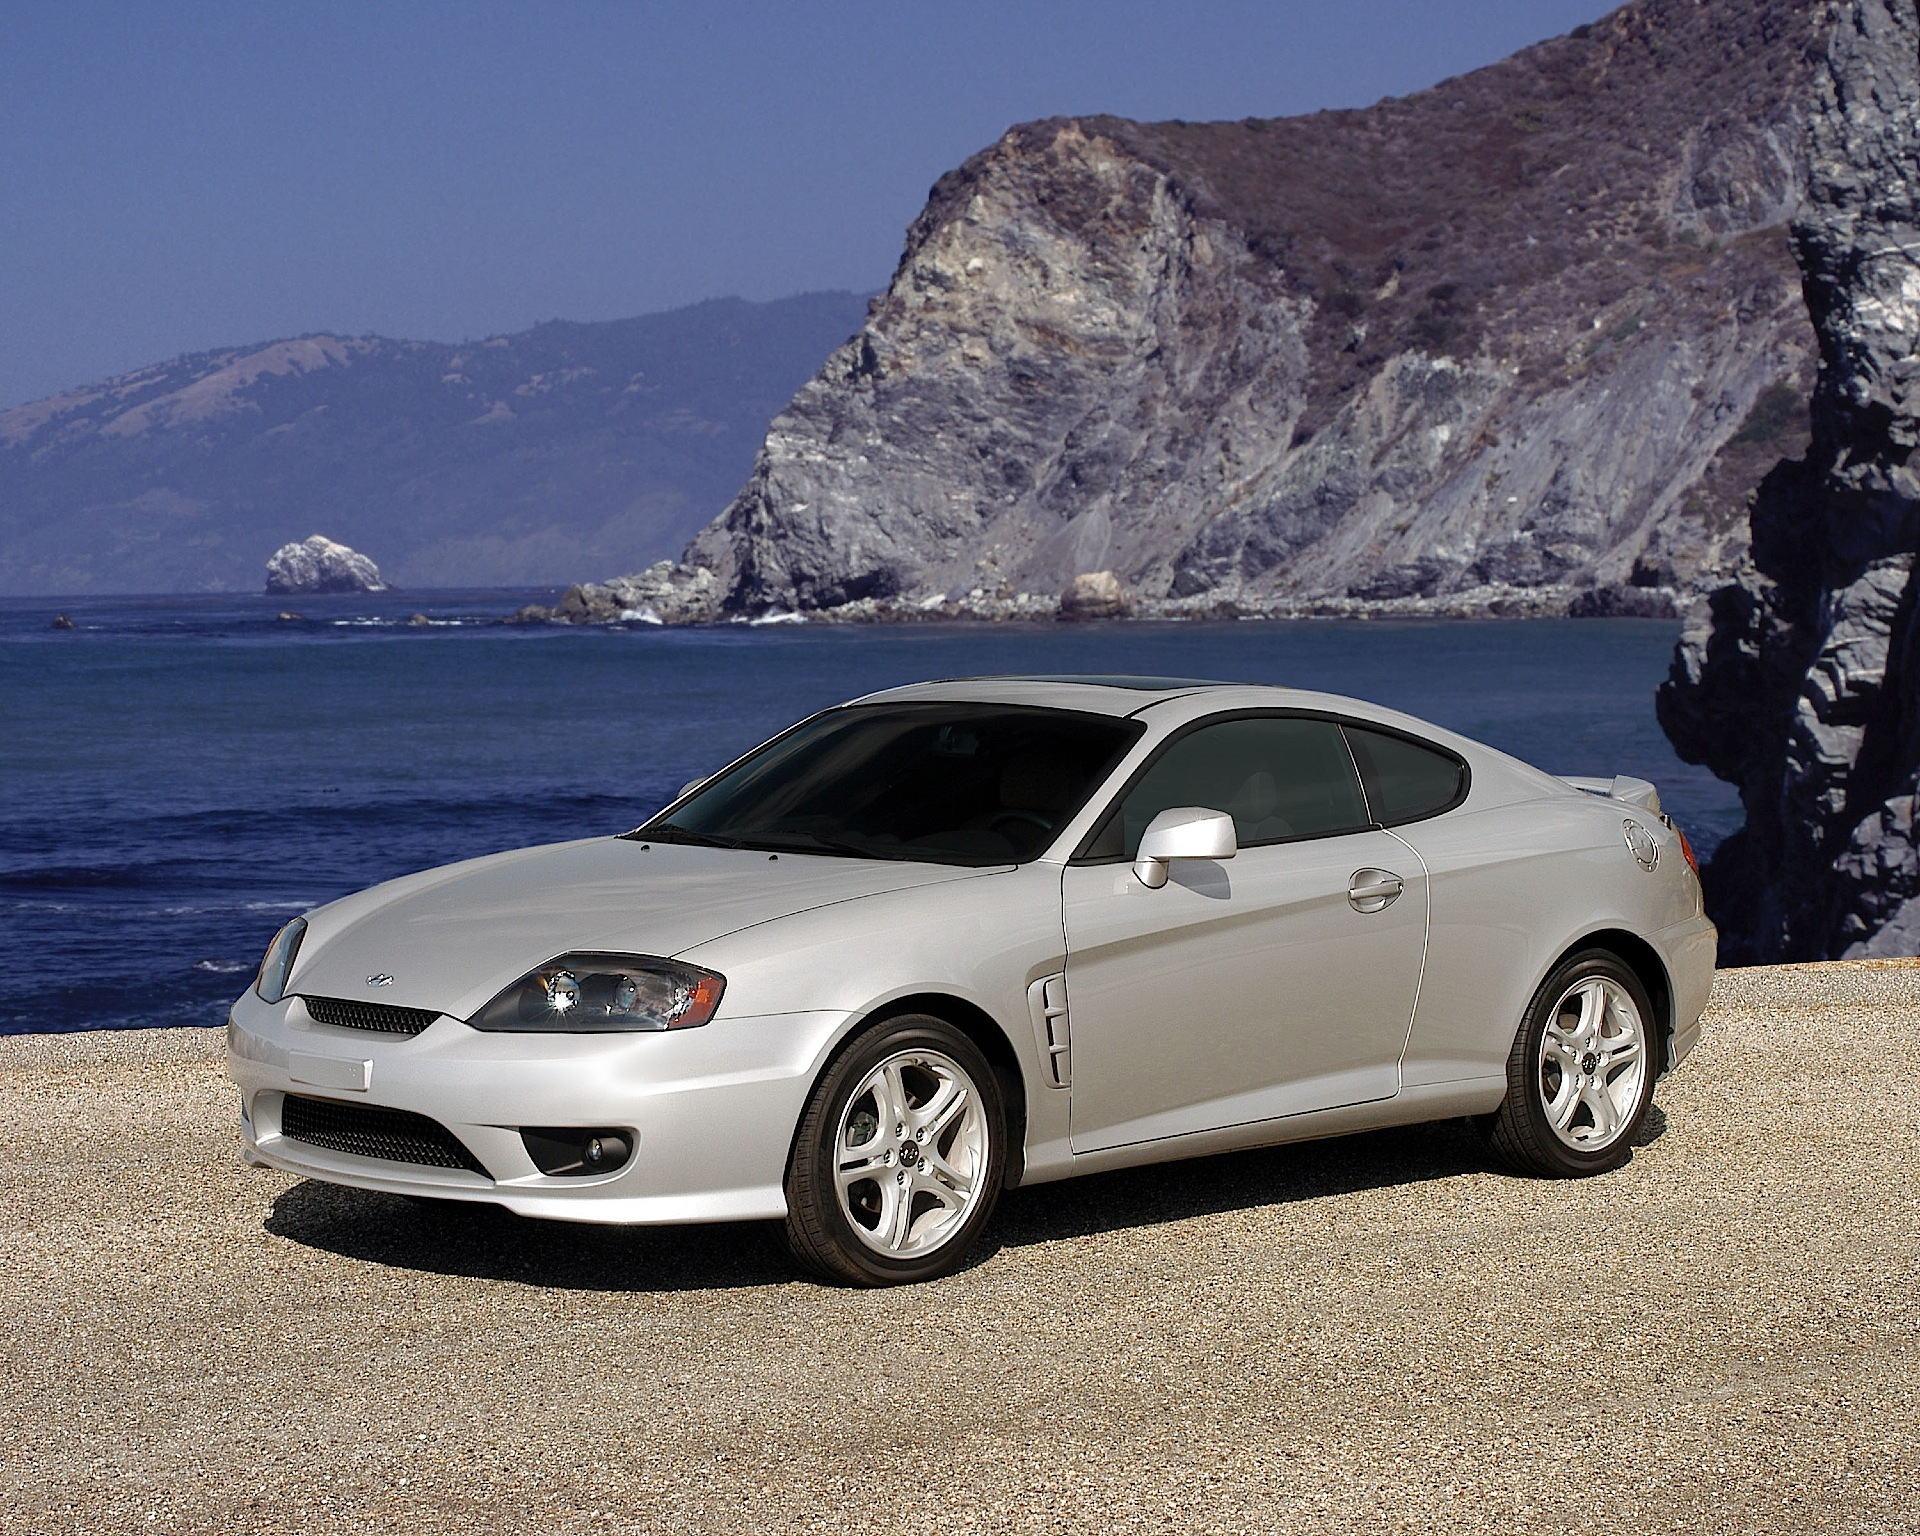 Hyundai Coupe II (GK) Restyling 2007 - 2009 Coupe #6